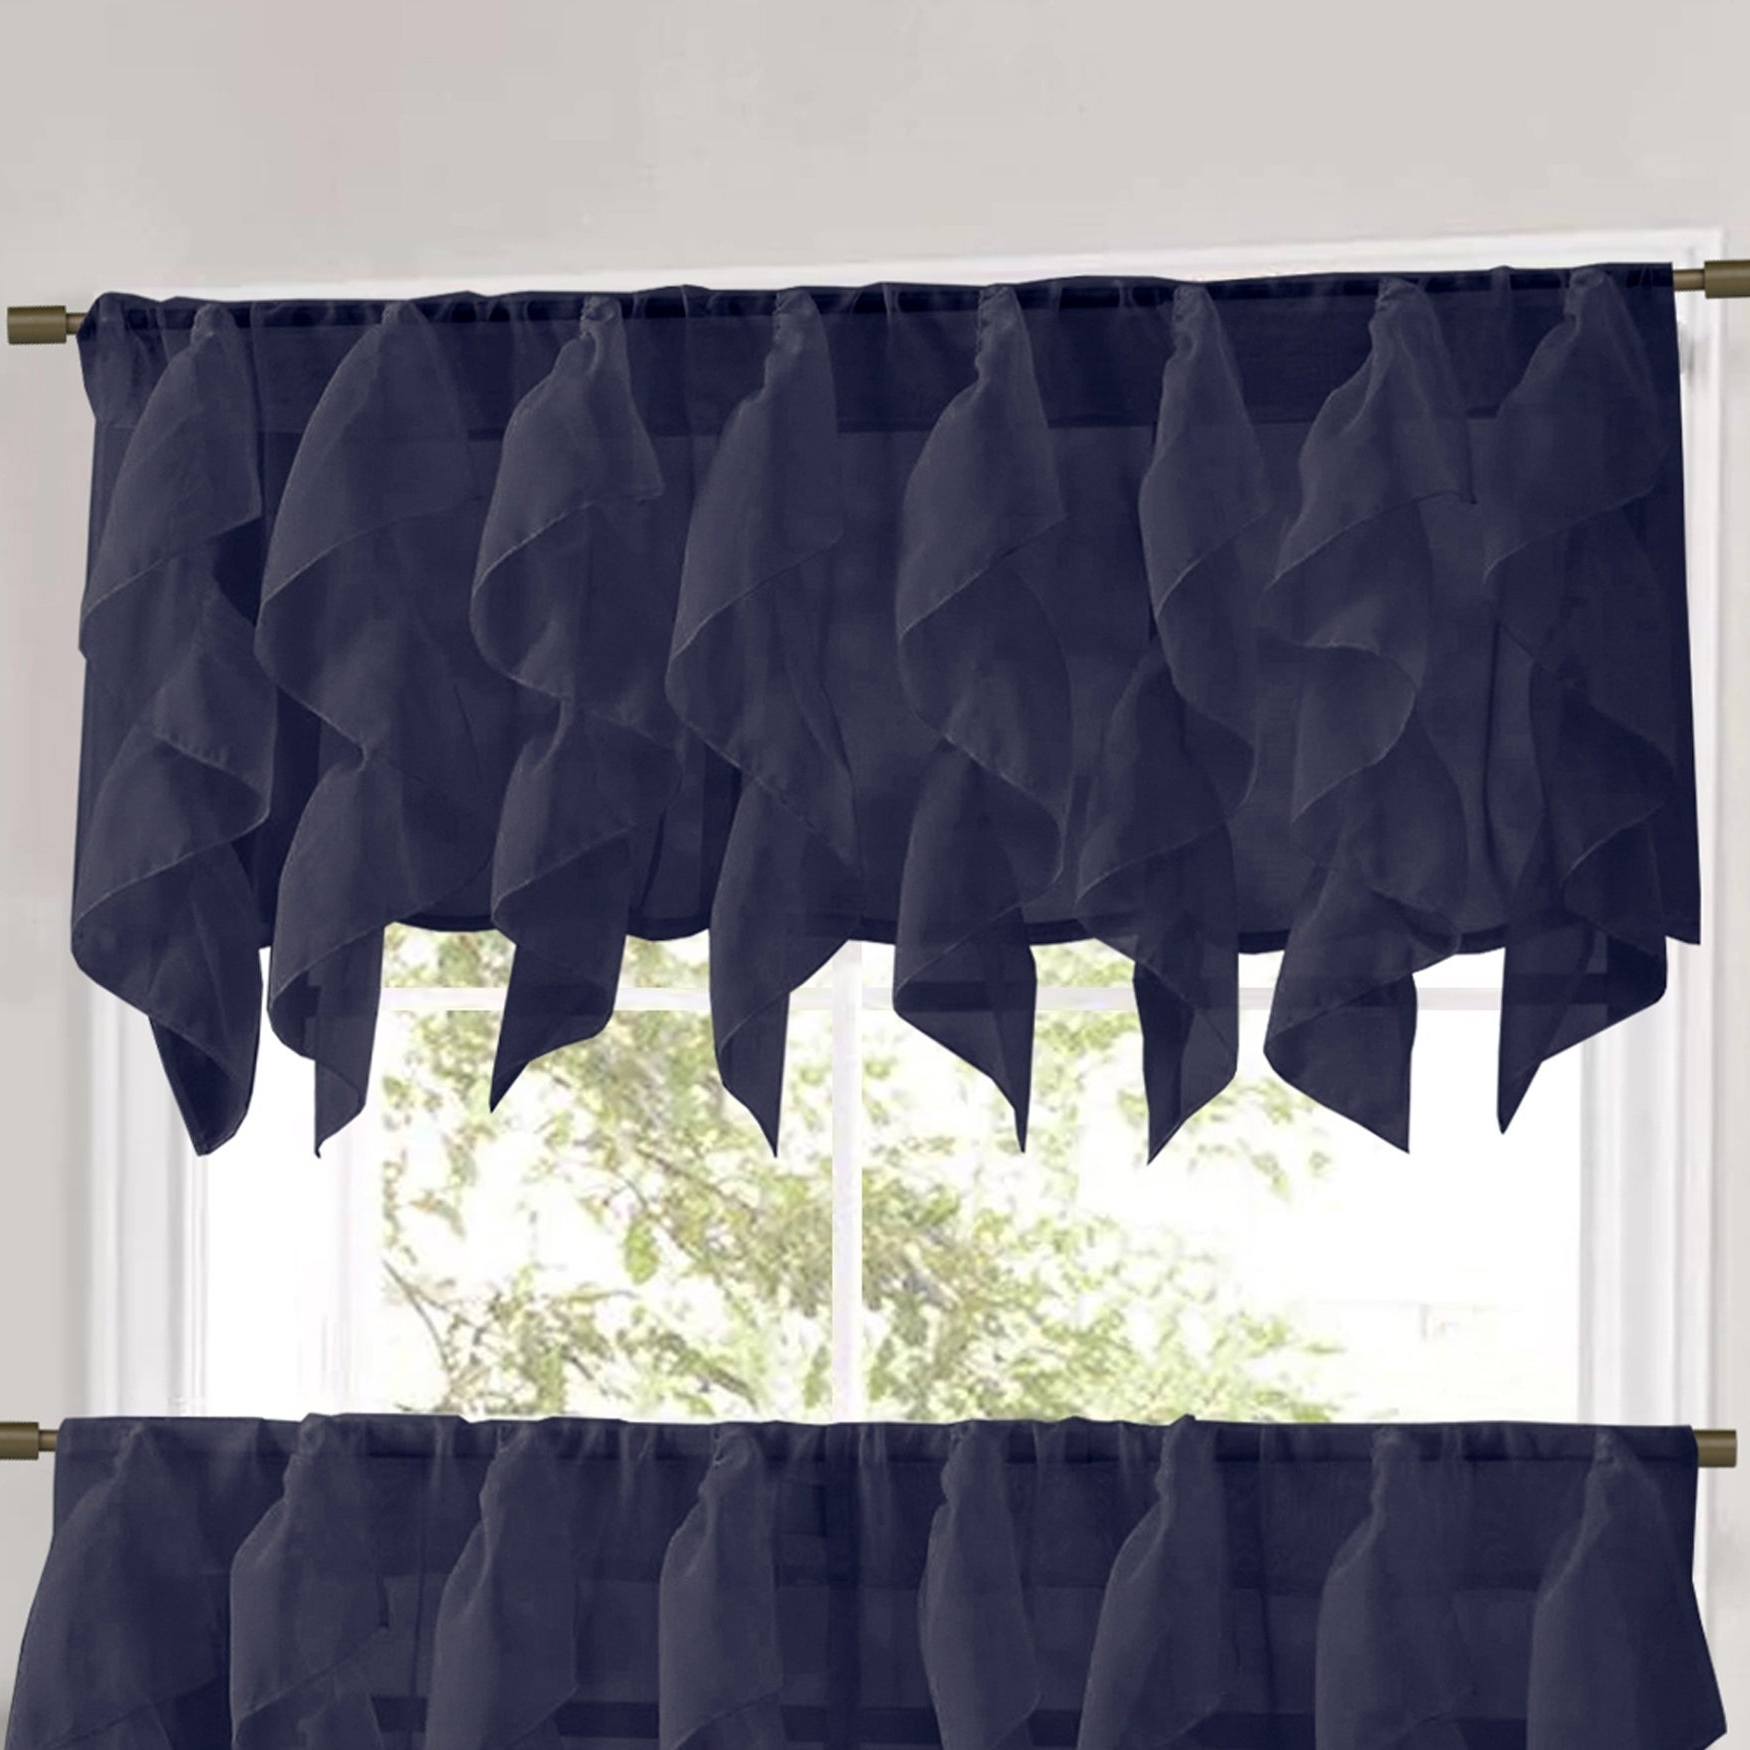 Famous Sweet Home Collection Navy Vertical Ruffled Waterfall Valance And Curtain Tiers Intended For Vertical Ruffled Waterfall Valances And Curtain Tiers (View 9 of 20)